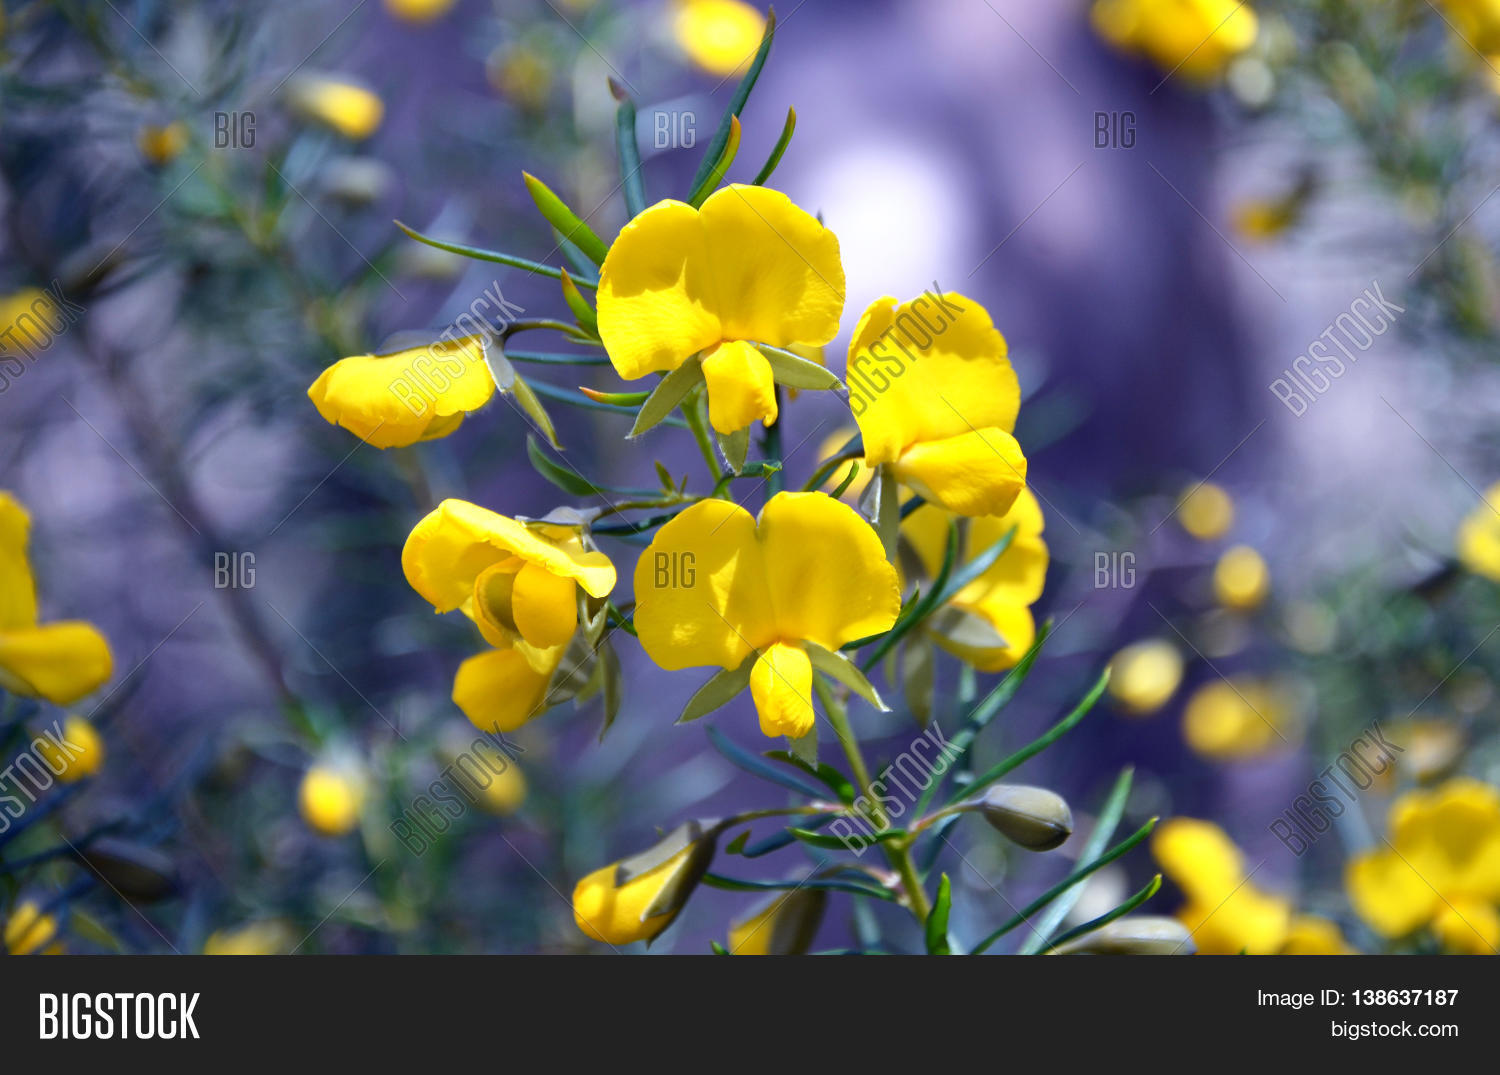 Yellow Flowers Image Photo Free Trial Bigstock